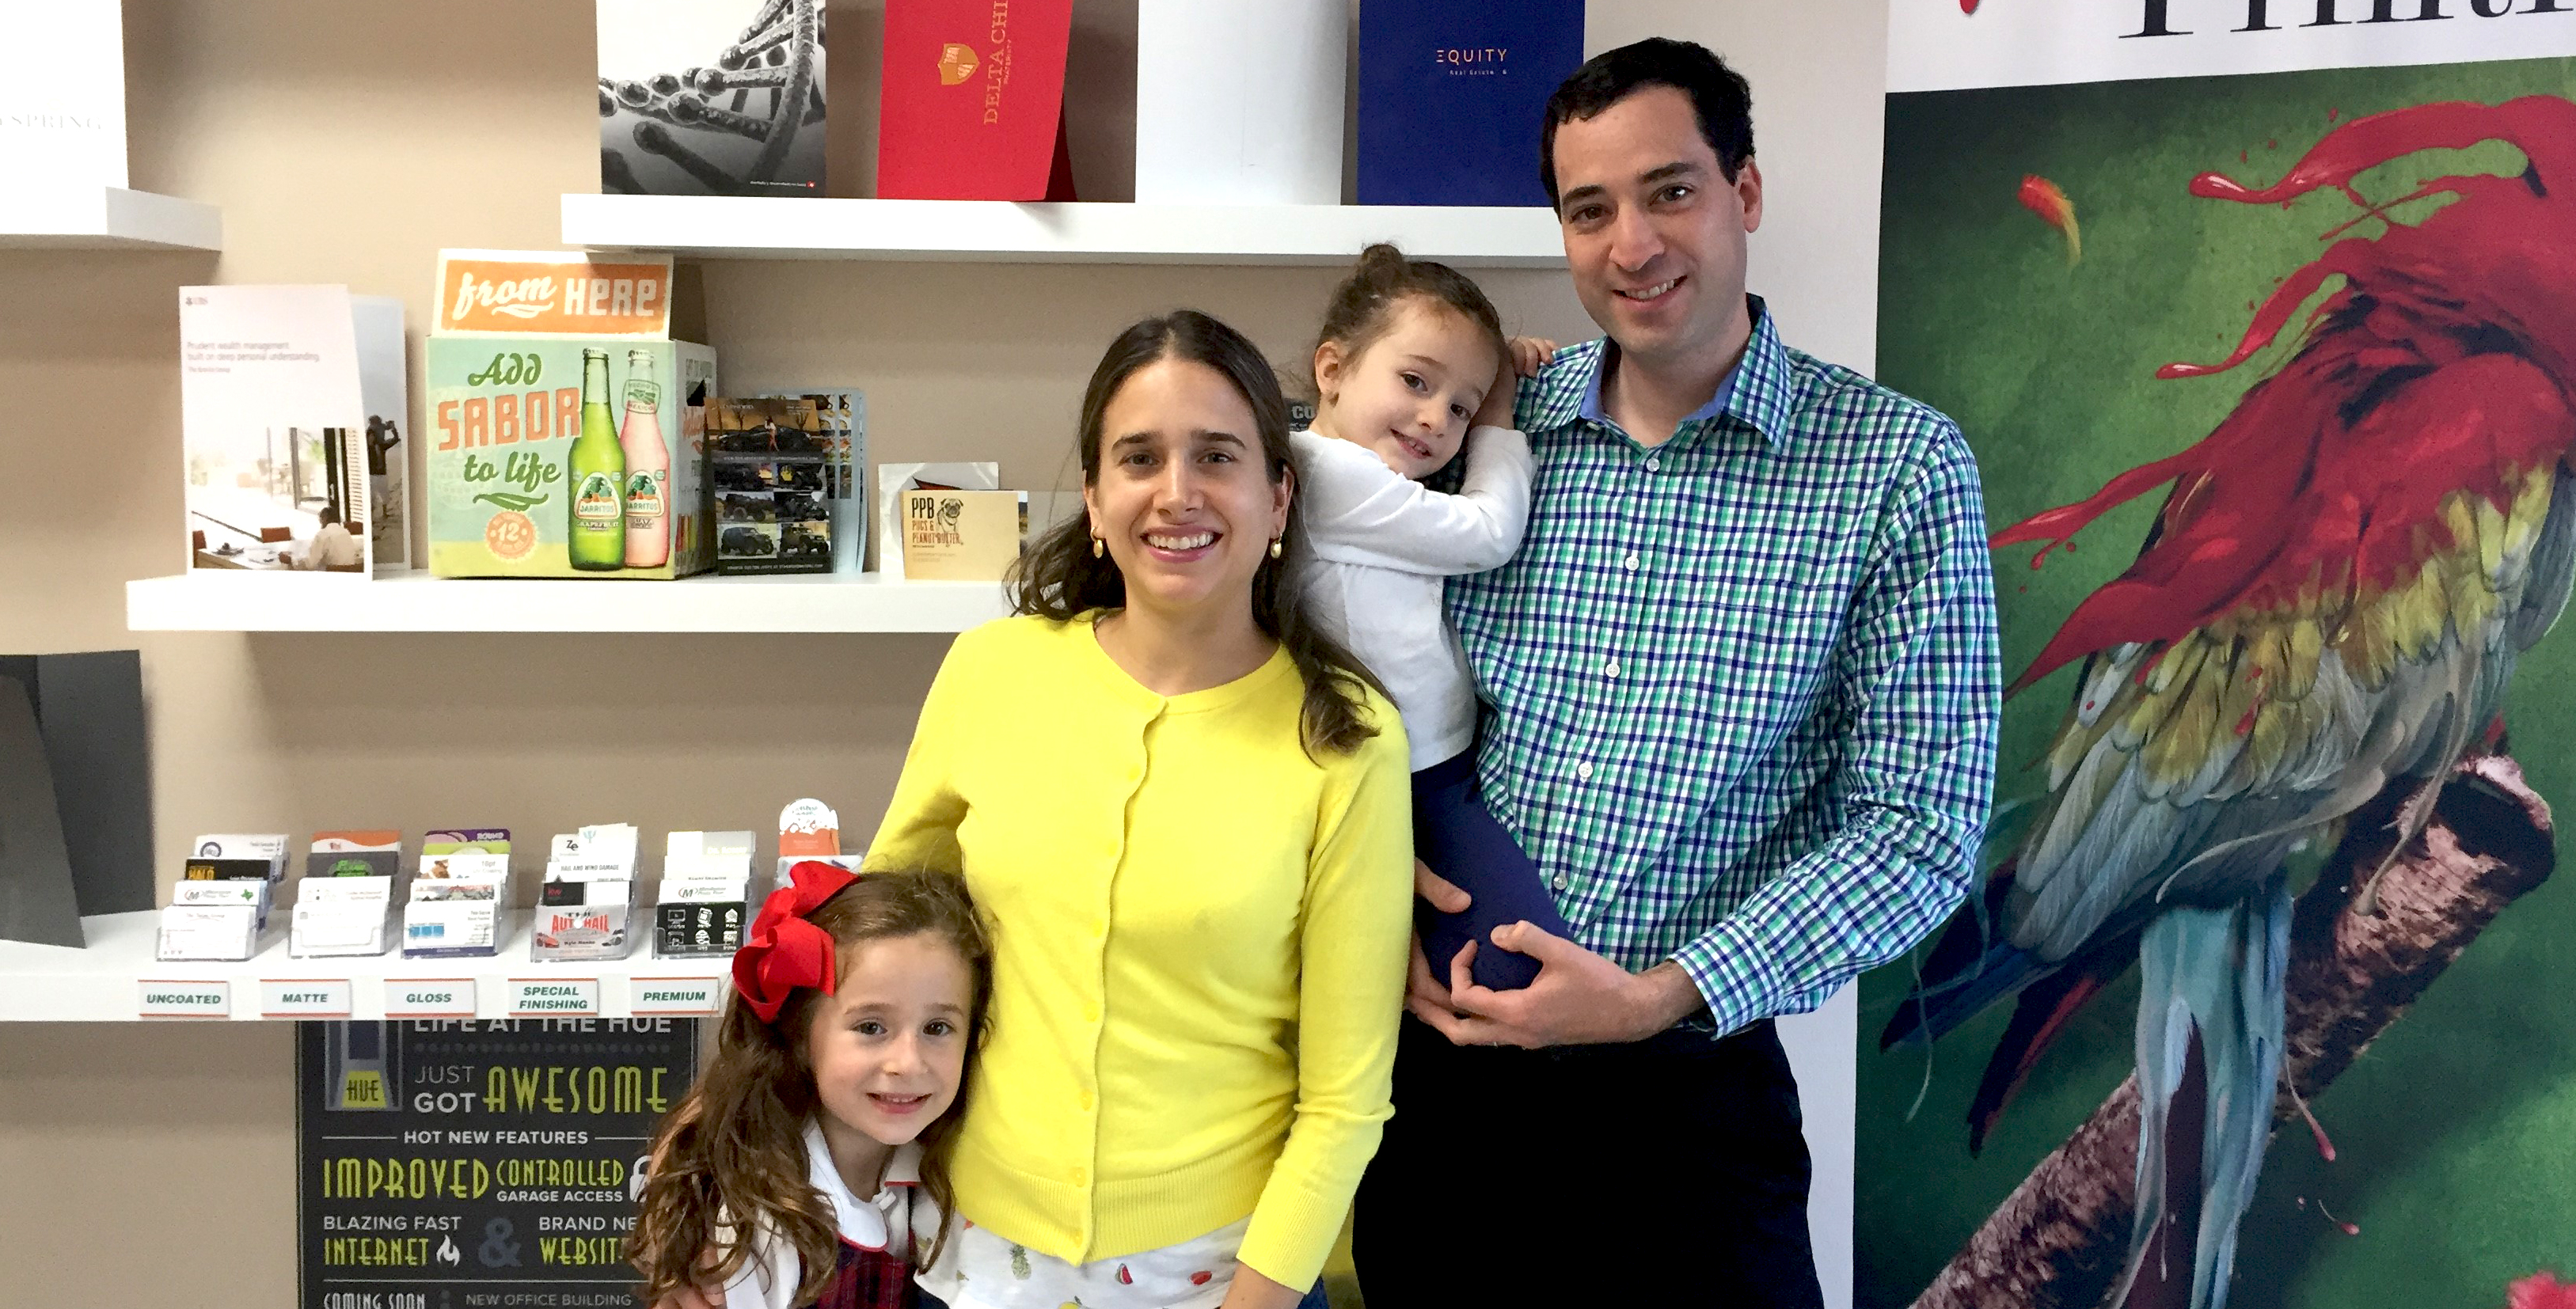 Meet the Leal Family, owners of the Minuteman Press design, marketing, and printing franchise in Plano, Texas - L-R: Victoria, Maggie, Natalia, and Gabriel Leal. http://www.minutemanpressfranchise.com